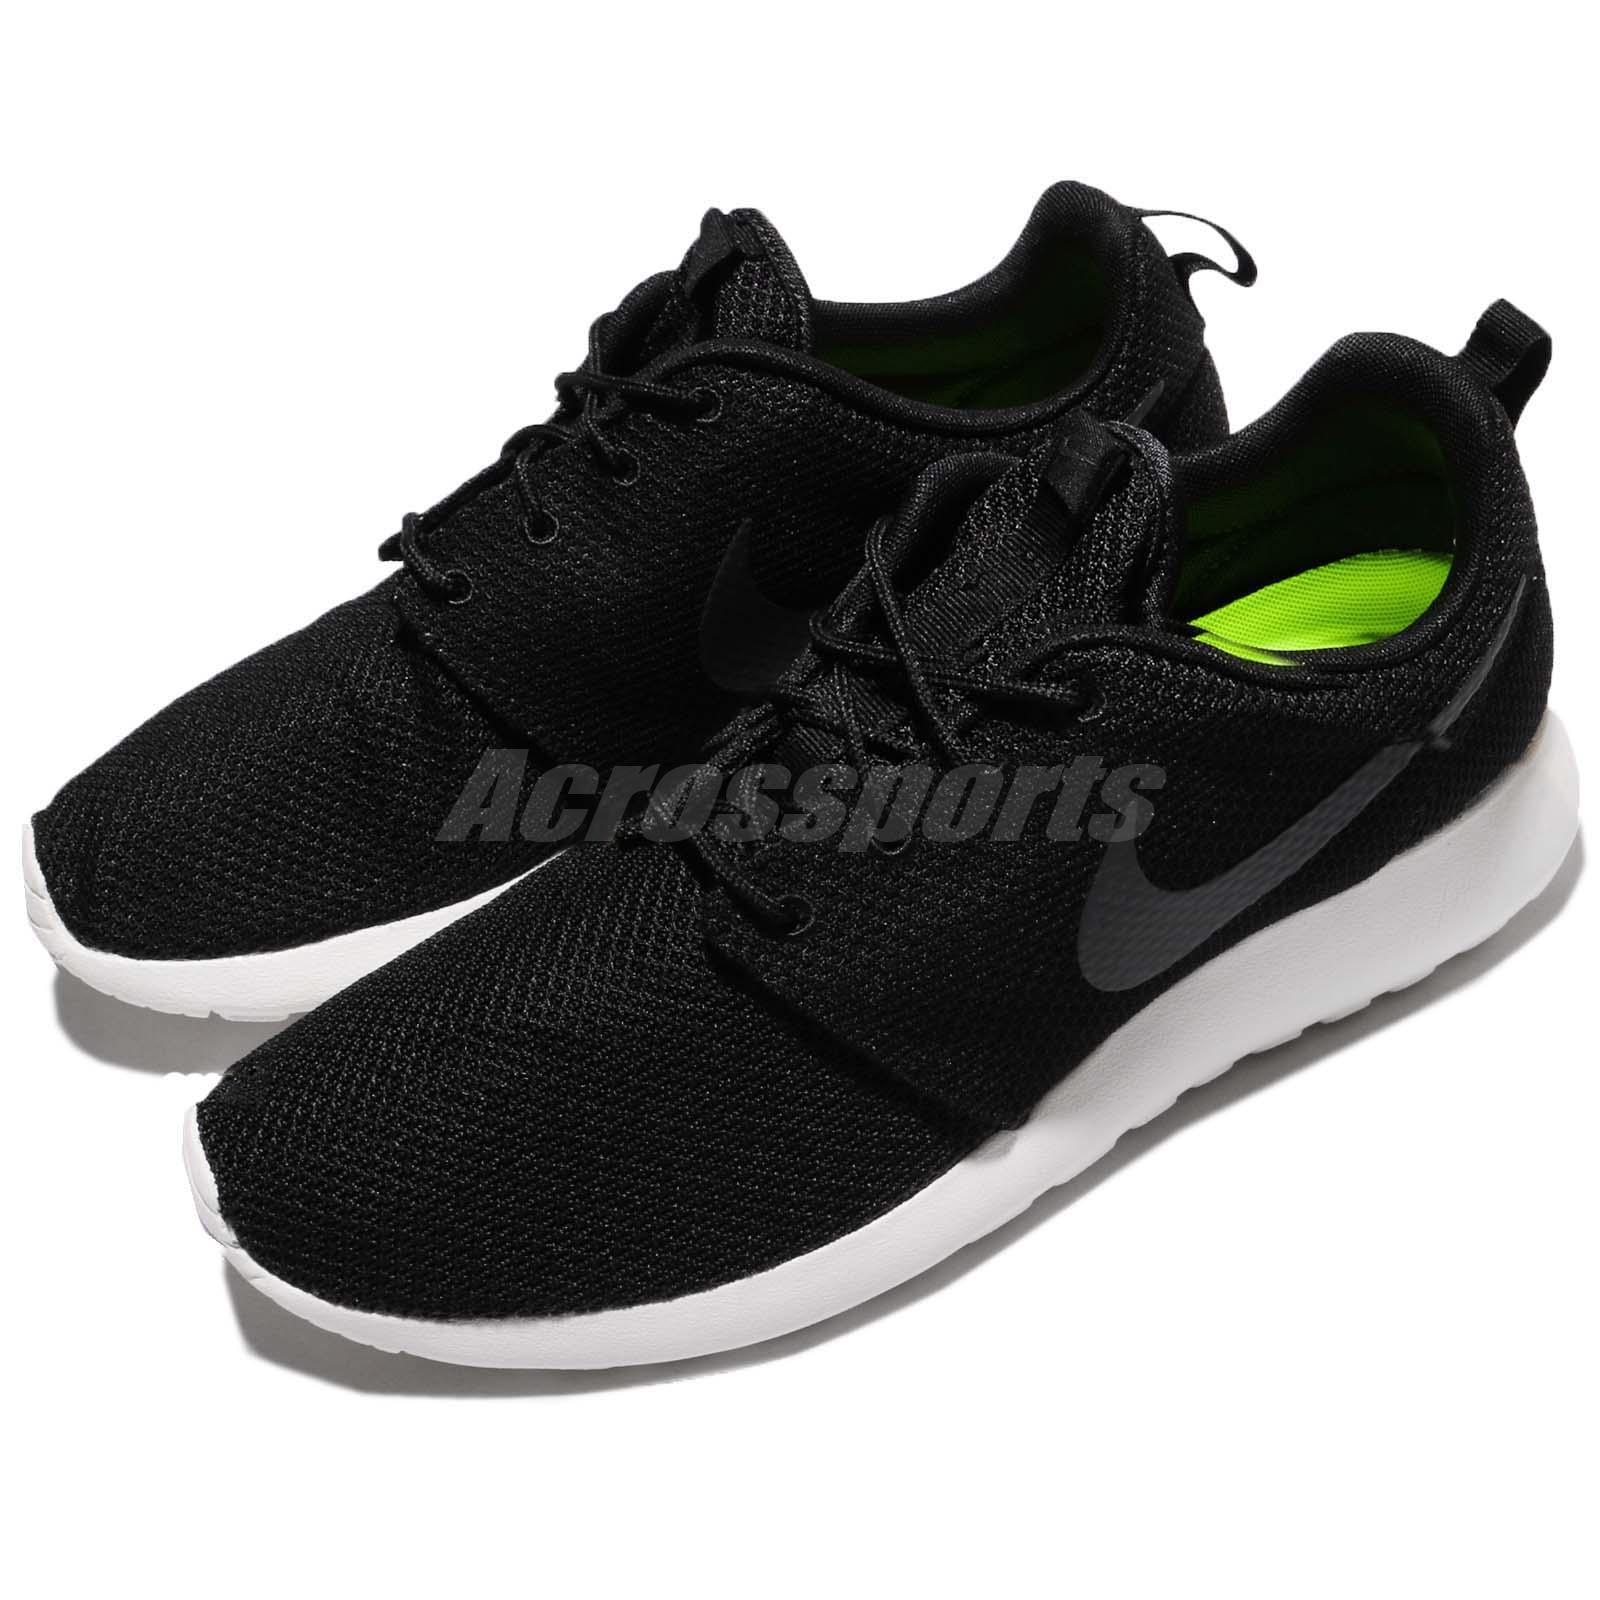 nike roshe one mens sportswear running casual shoes